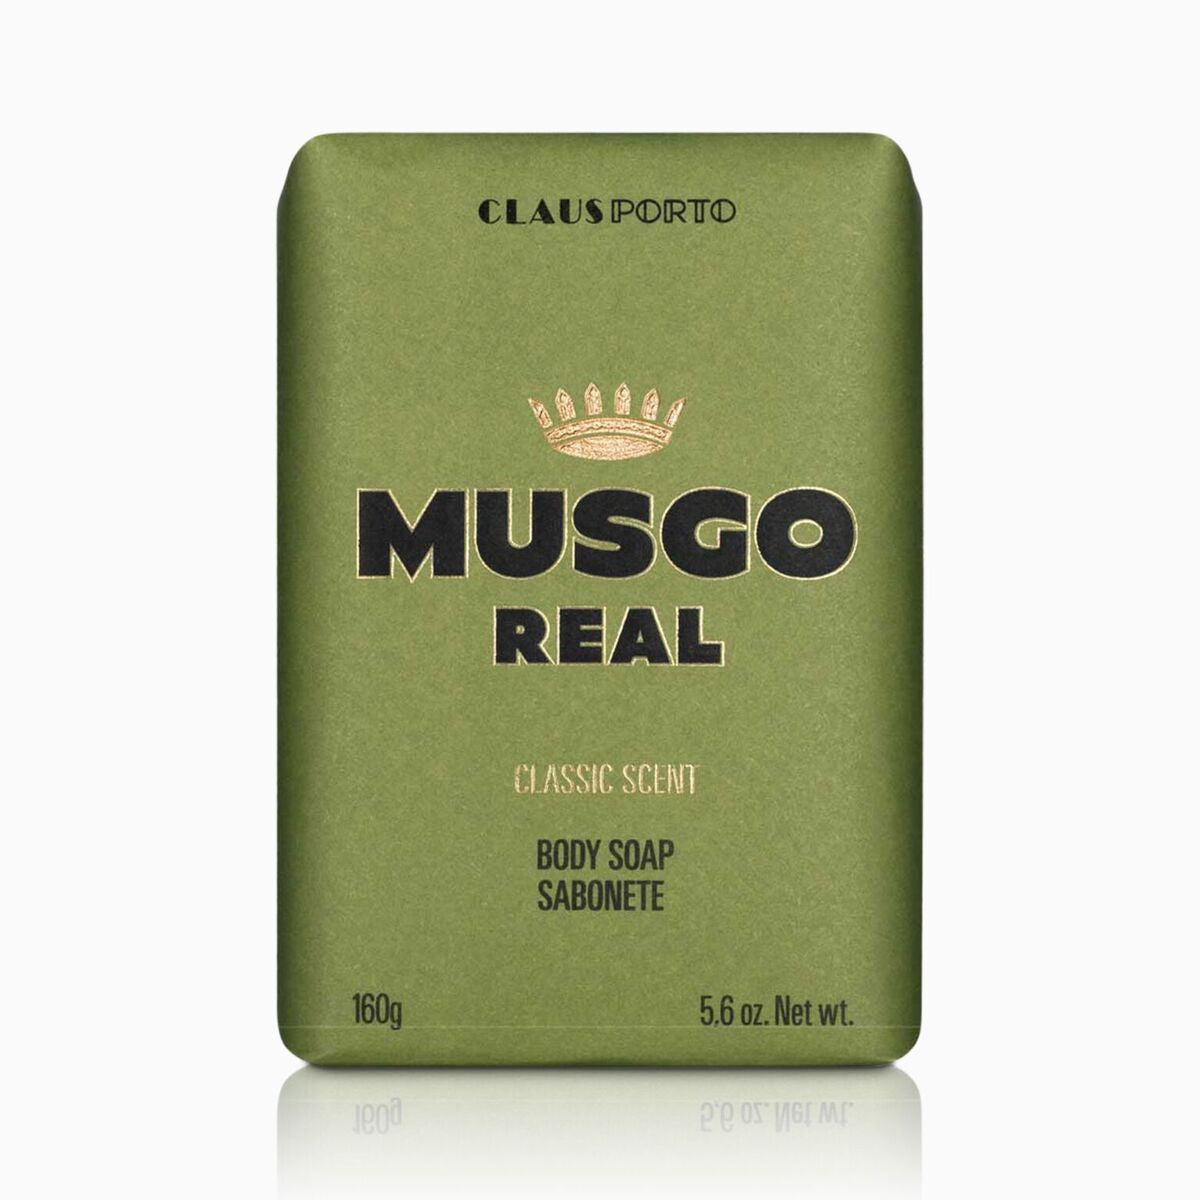 Musco real classic scent